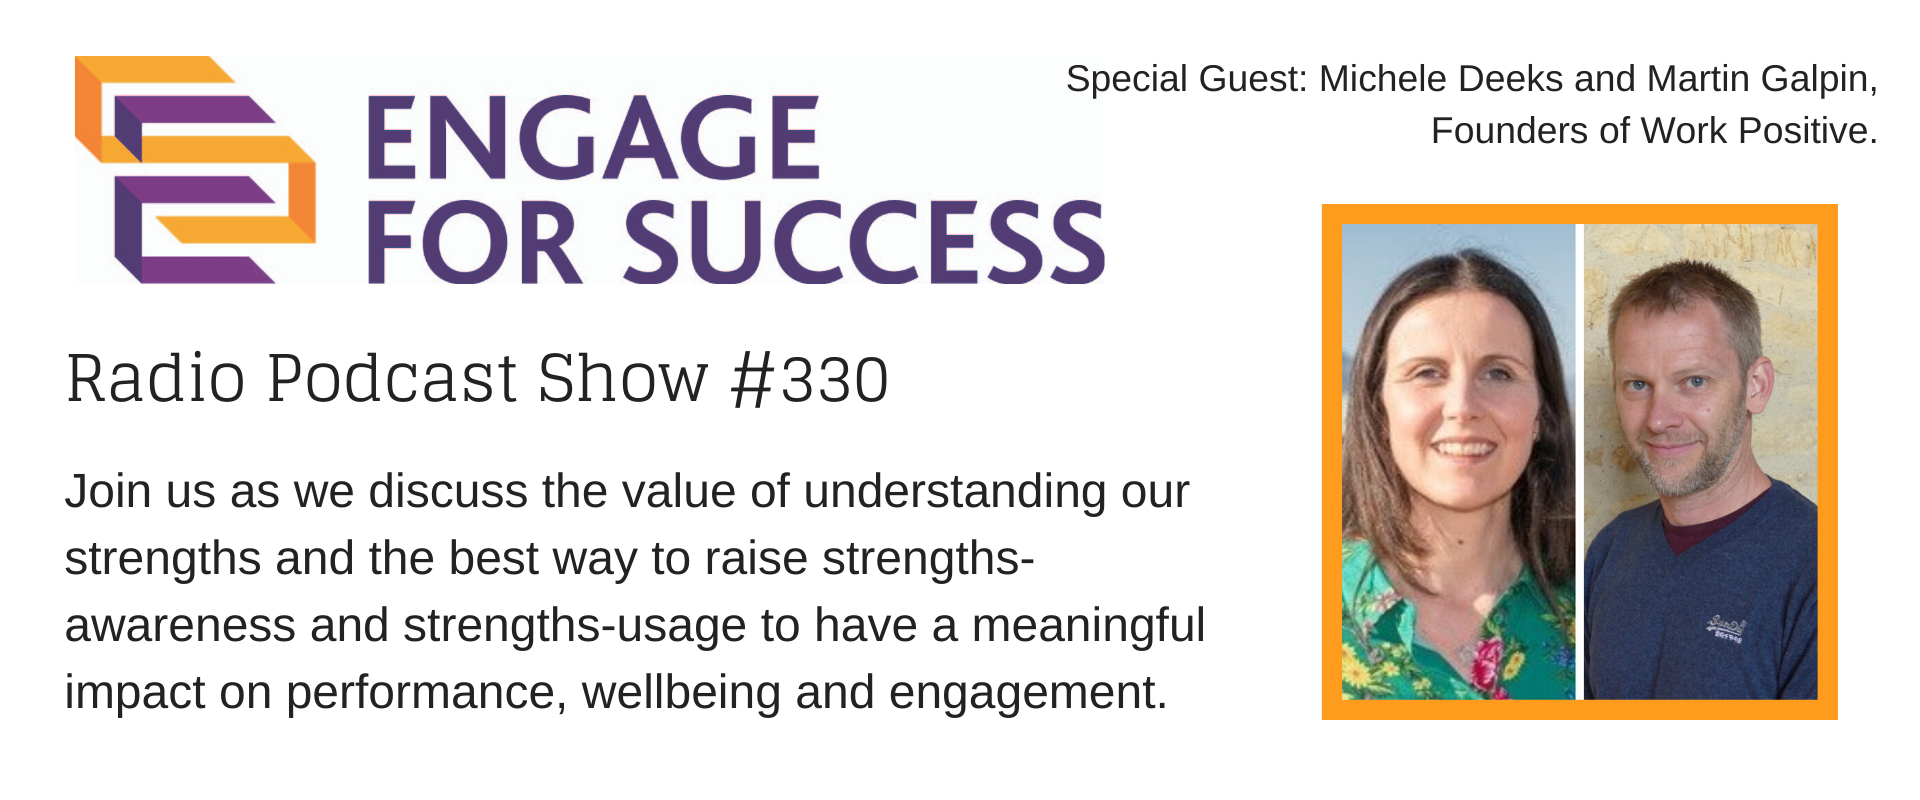 Radio Show #330: The value of understanding our strengths